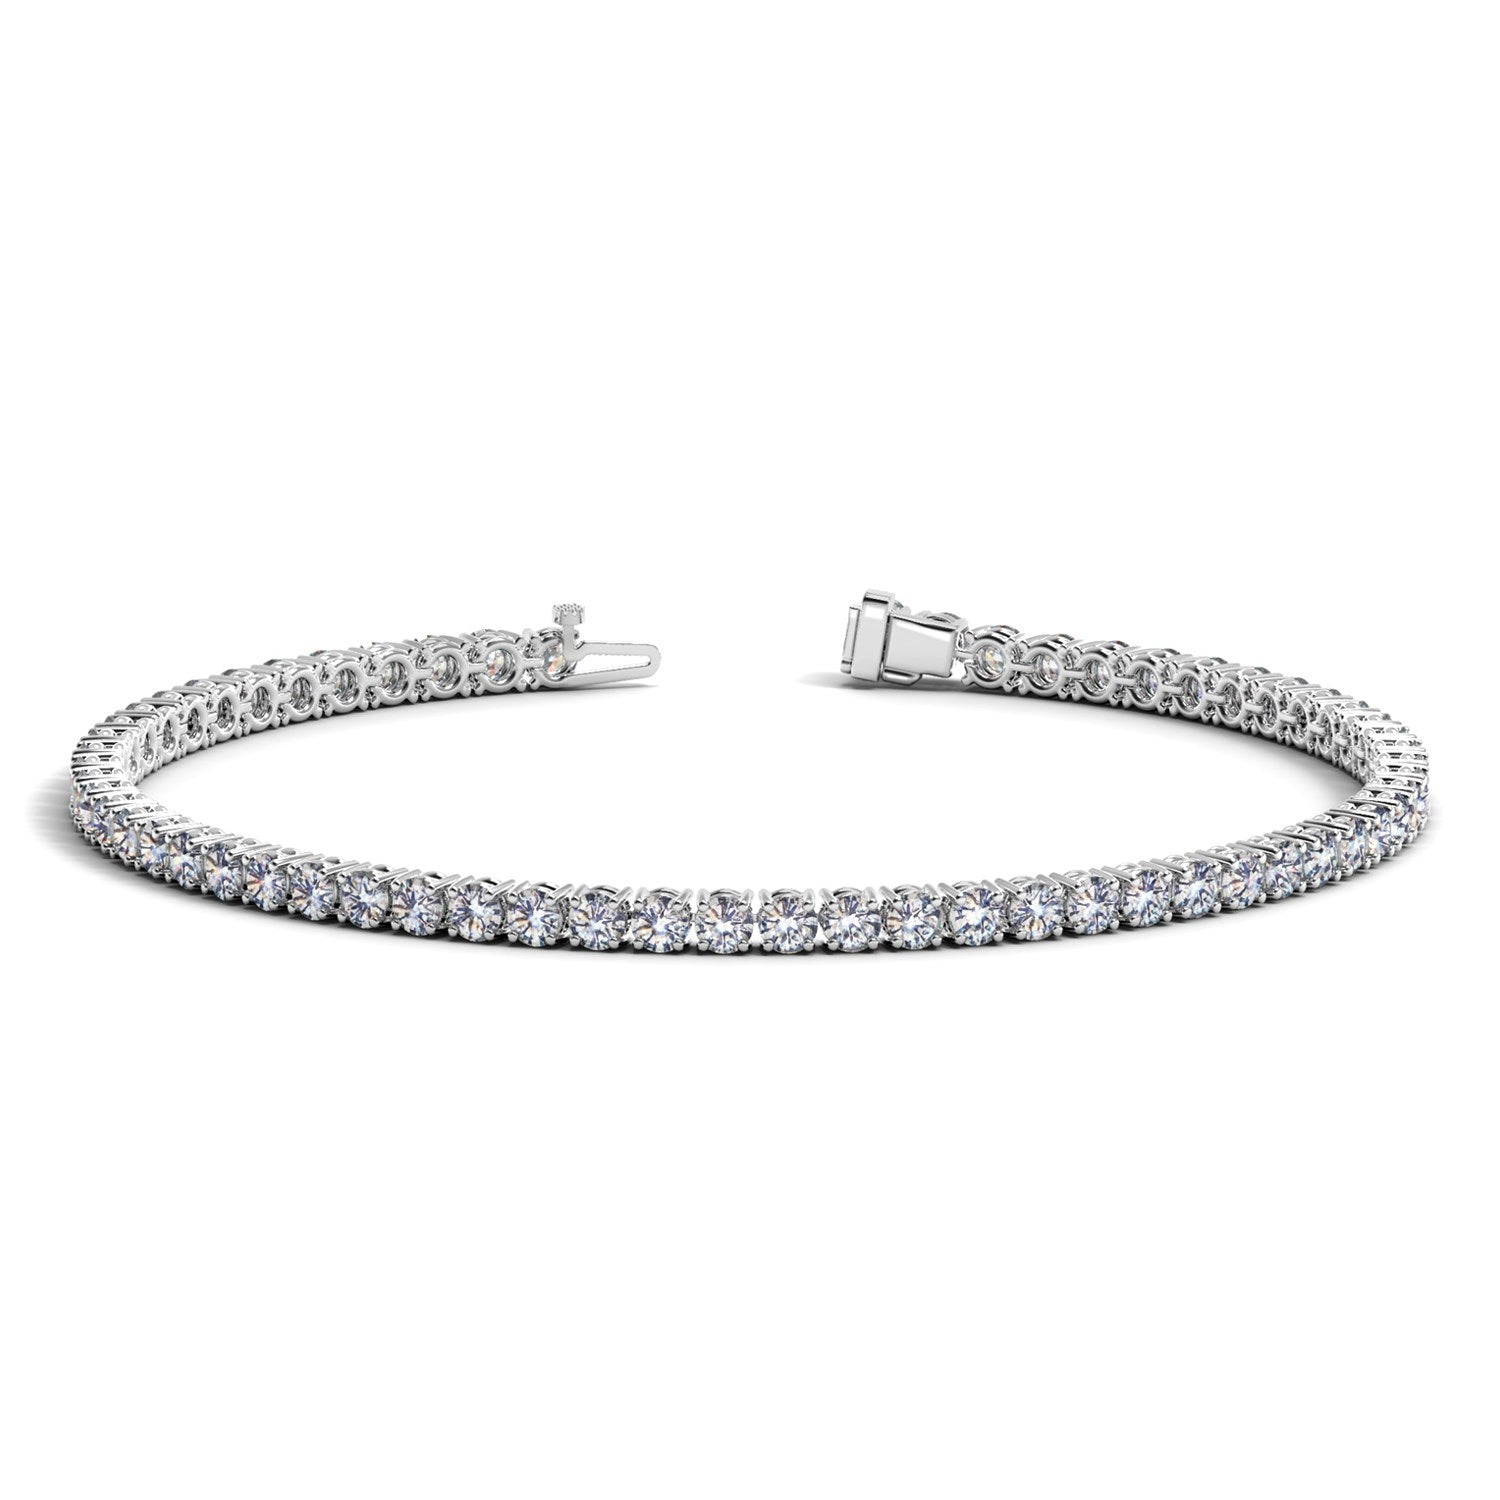 14K White Gold Round Diamond Tennis Bracelet (4 ct. tw.)